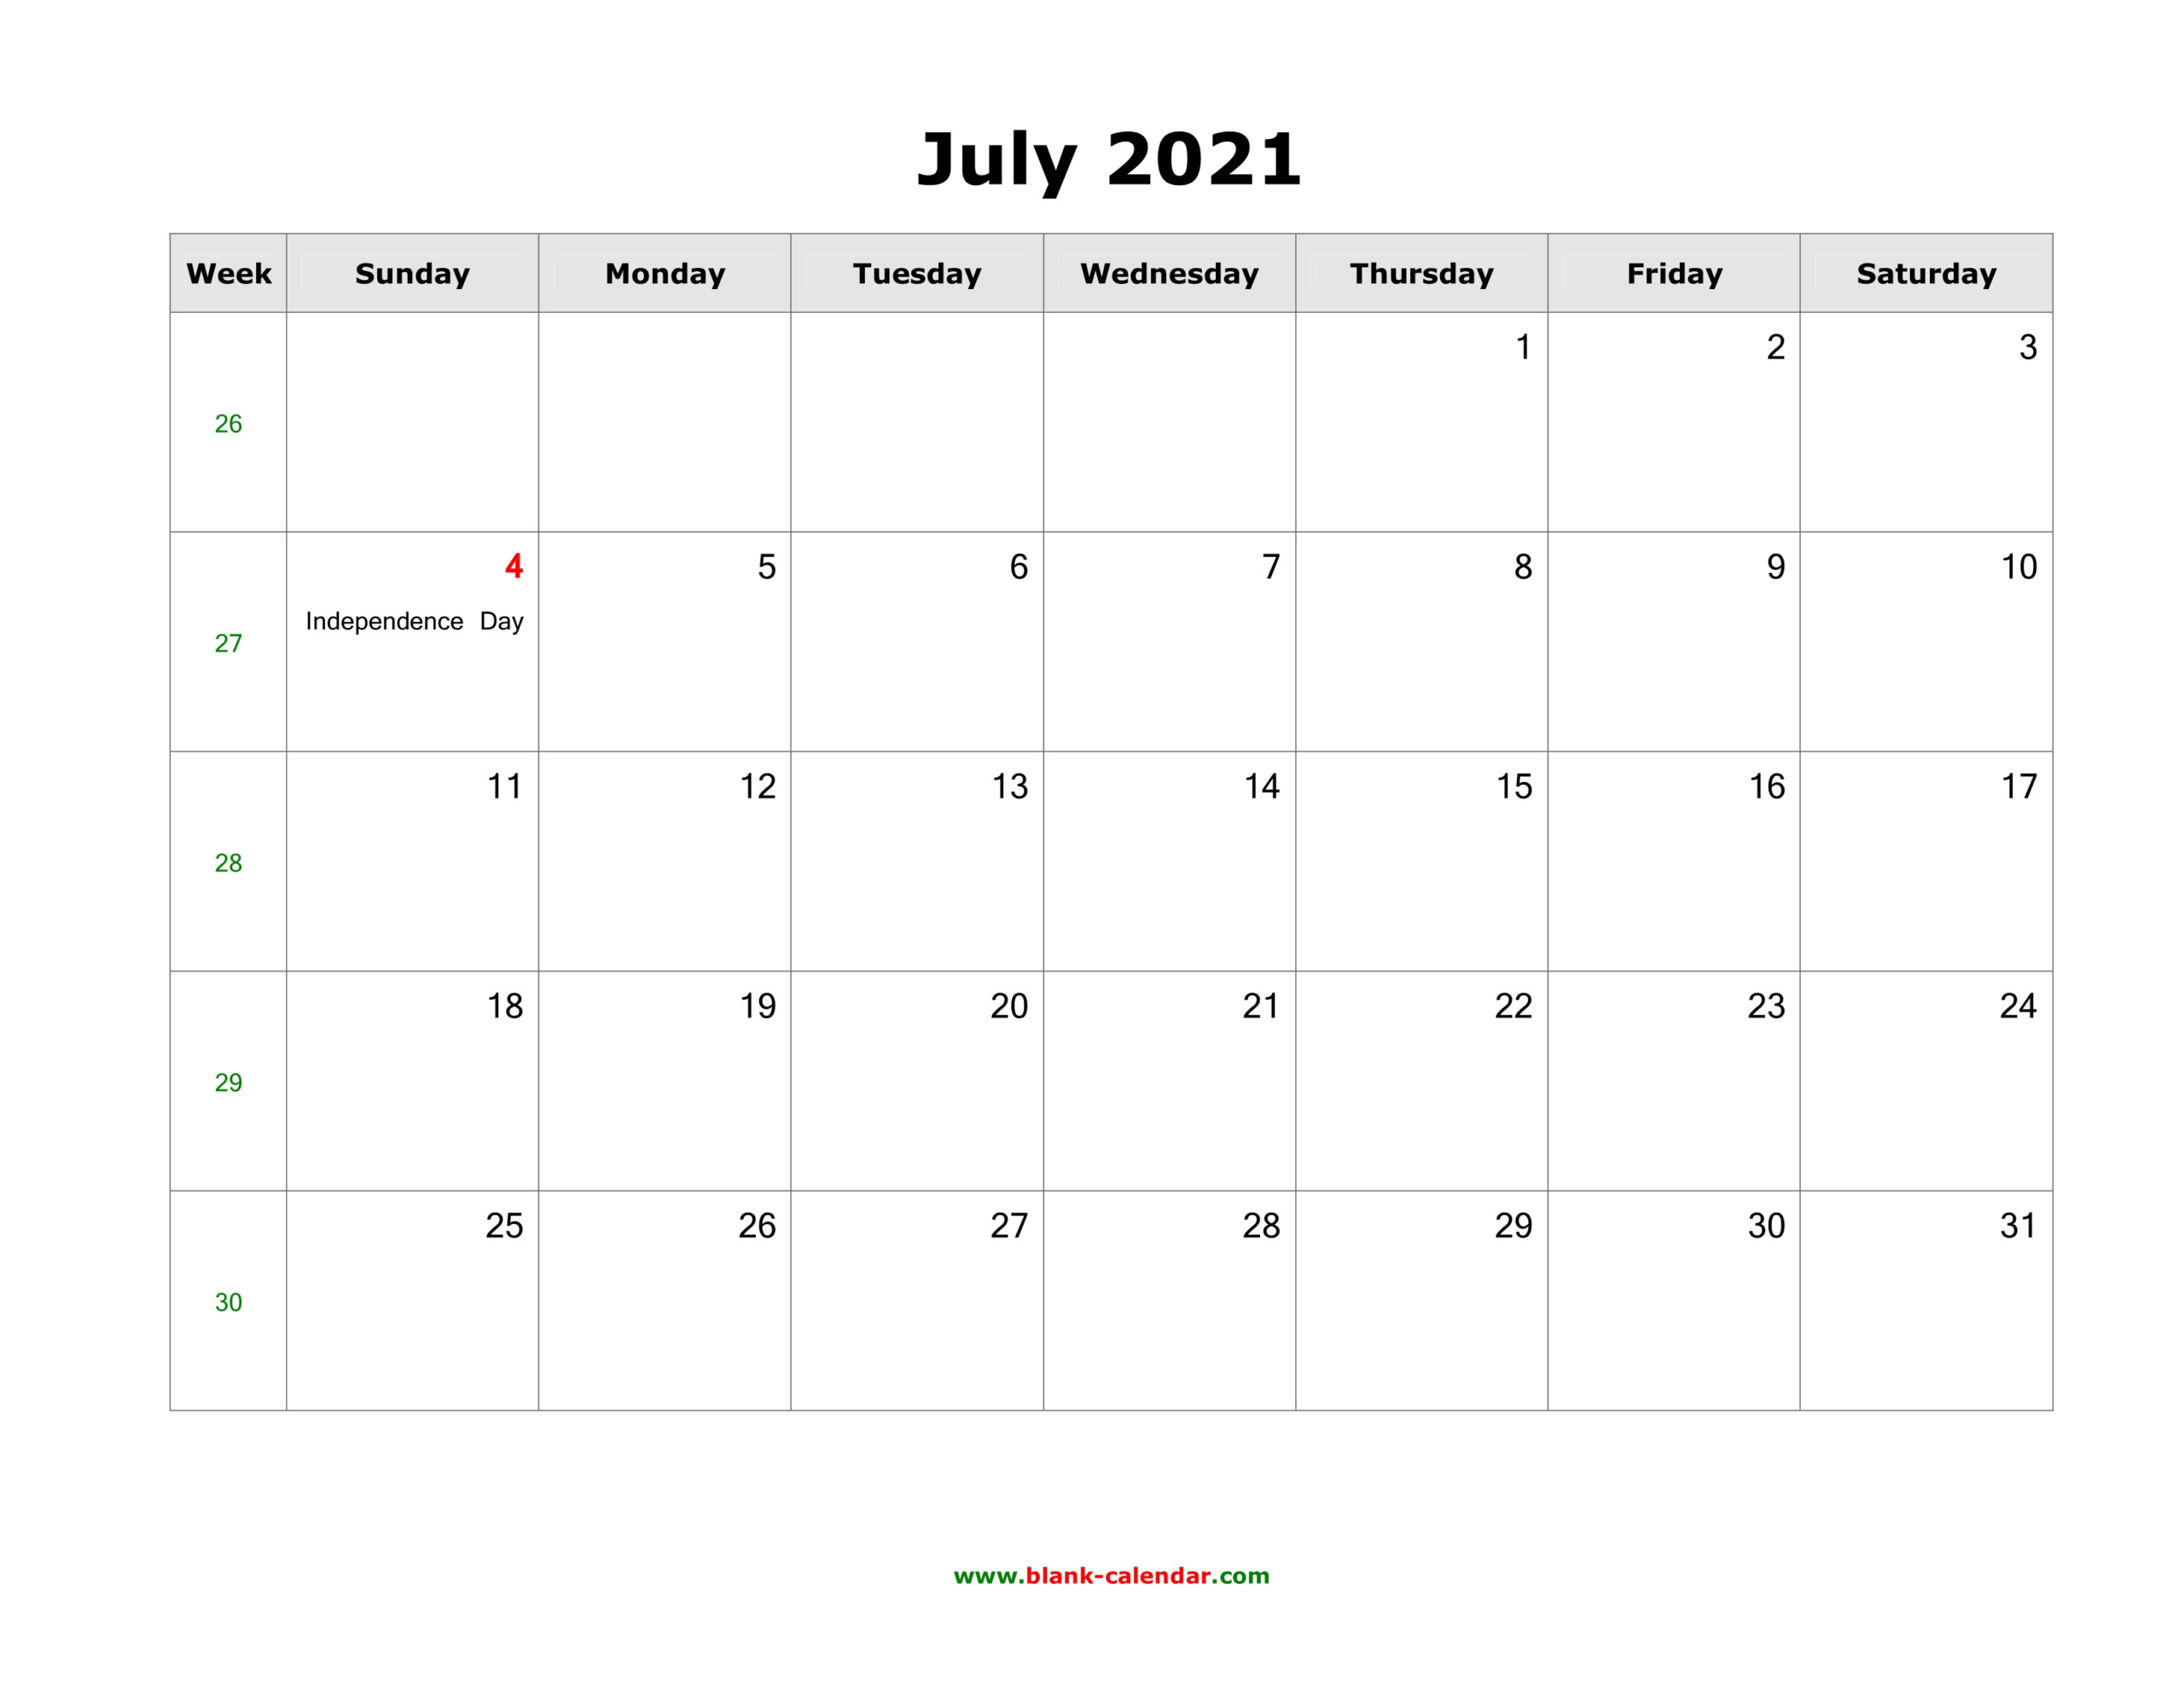 July 2021 Blank Calendar | Free Download Calendar Templates